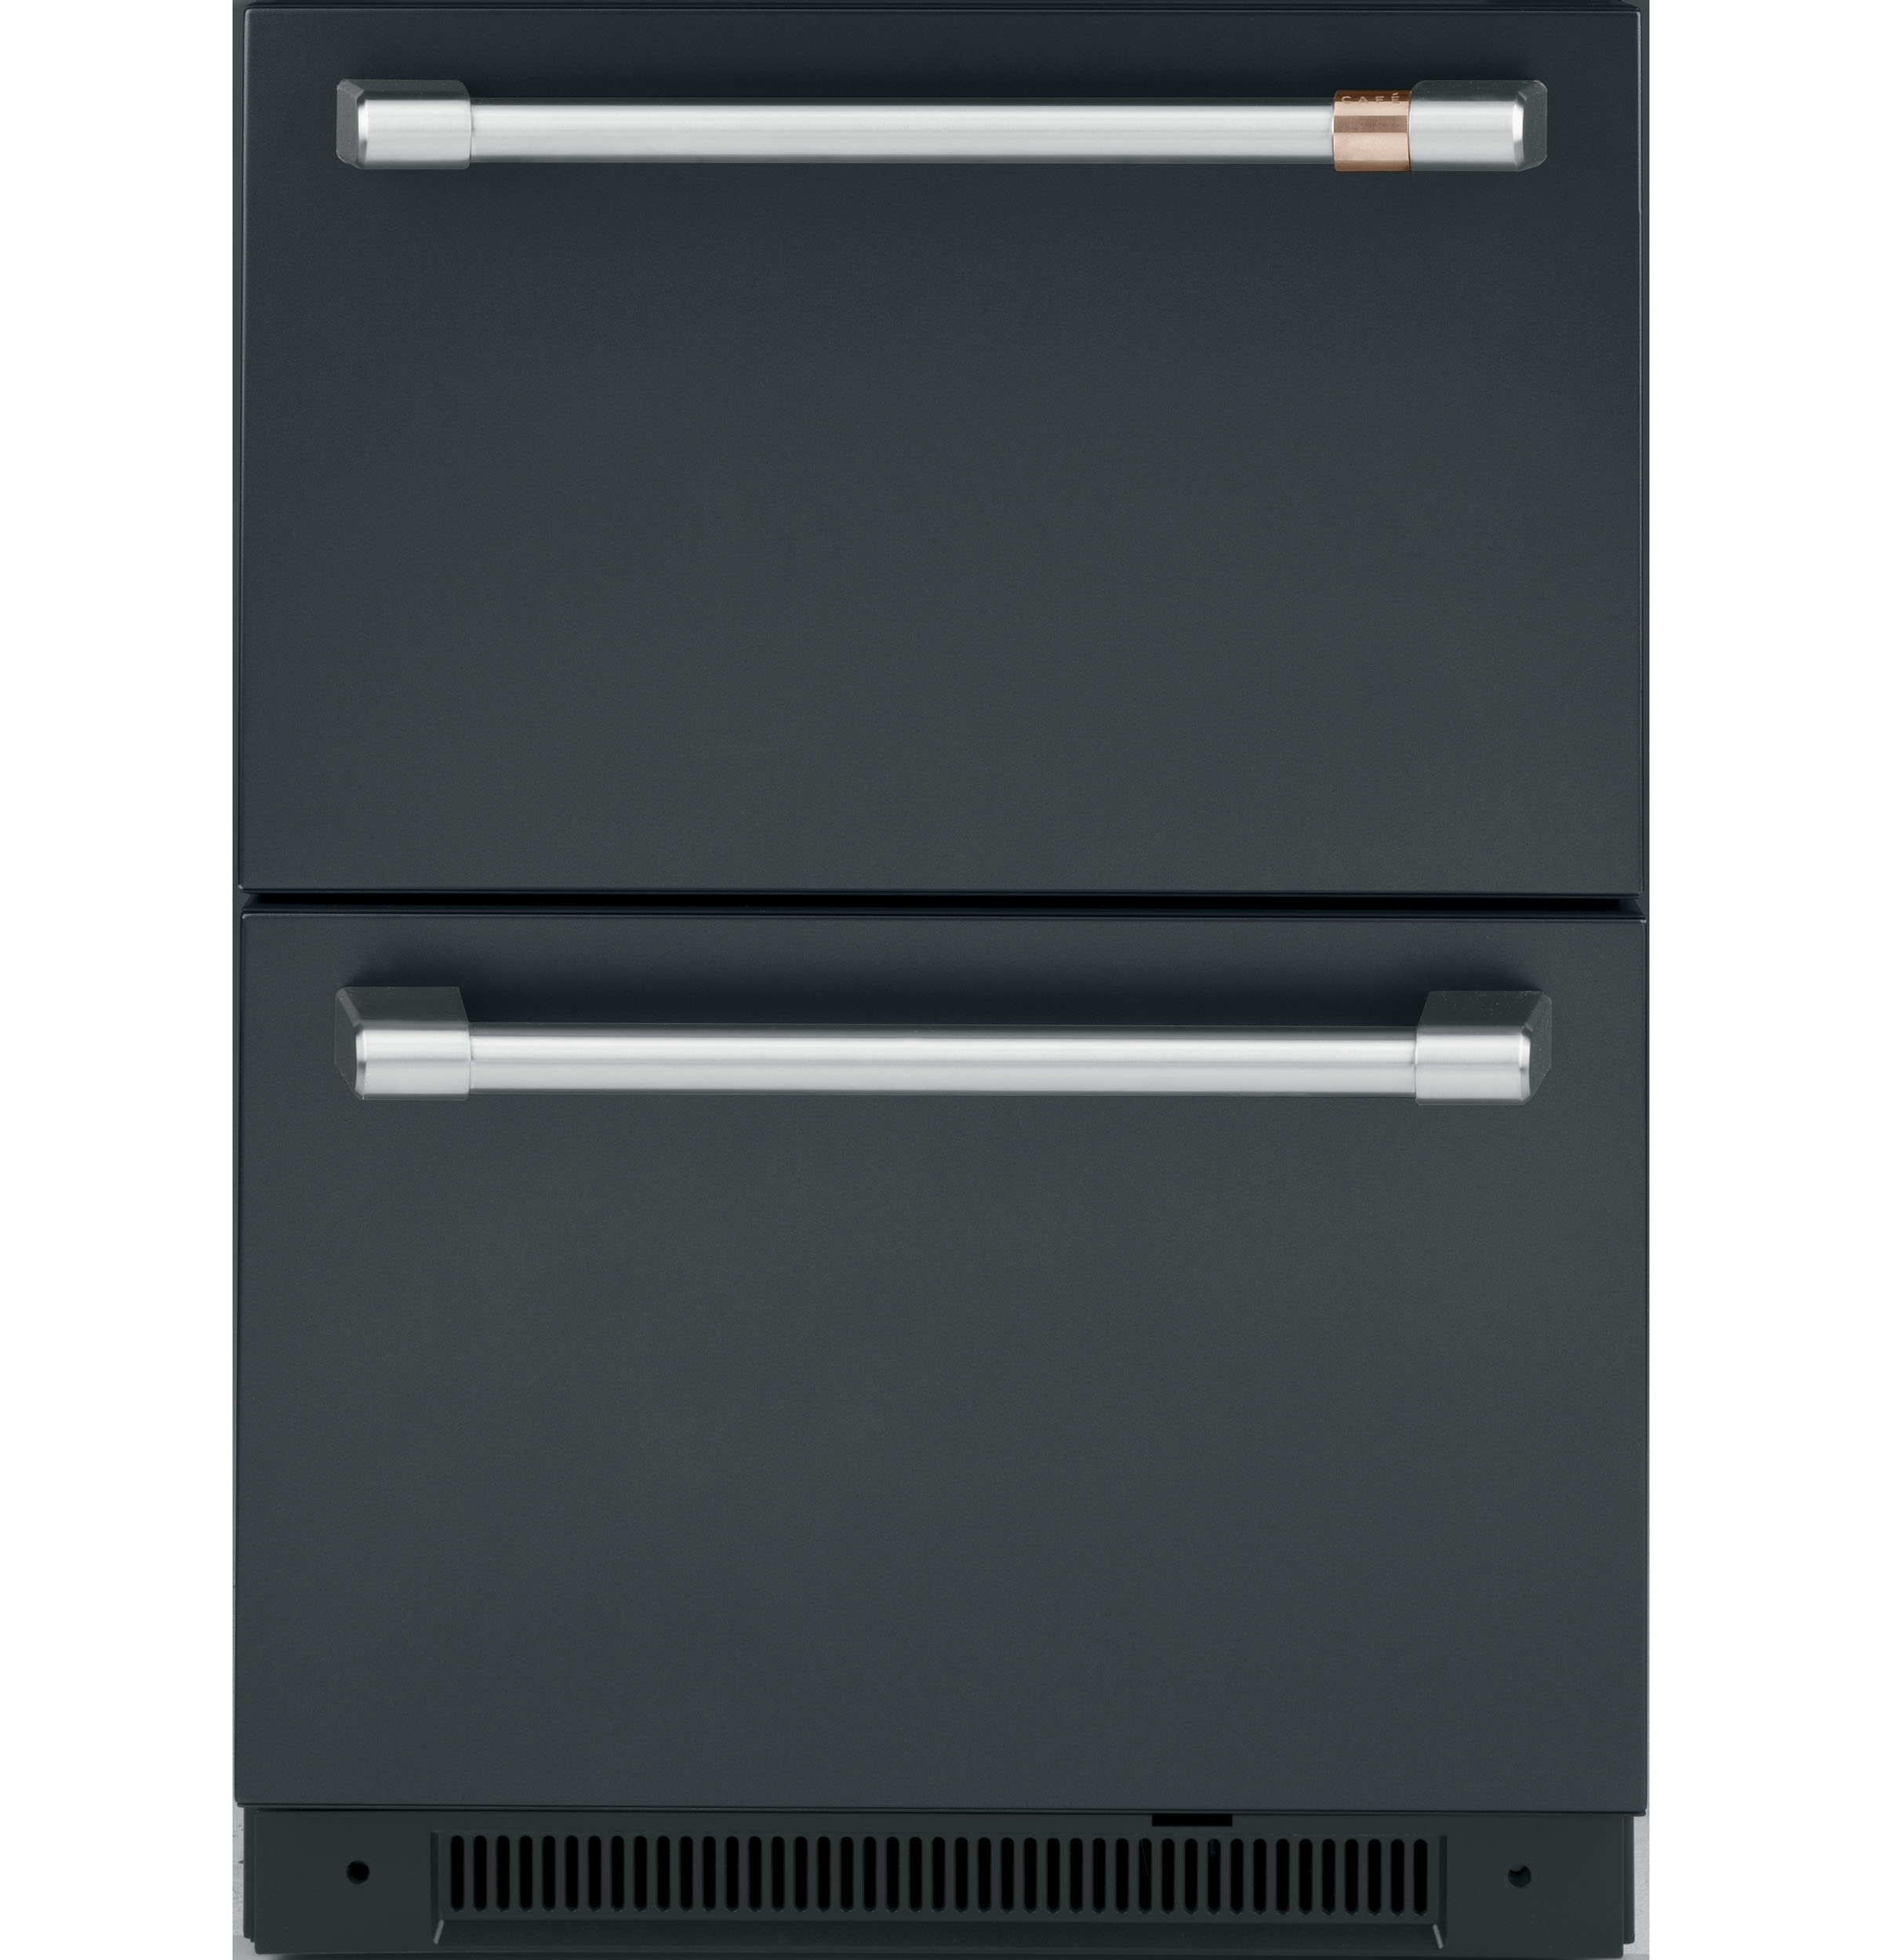 Café™ 5.7 Cu. Ft. Built-In Dual-Drawer Refrigerator